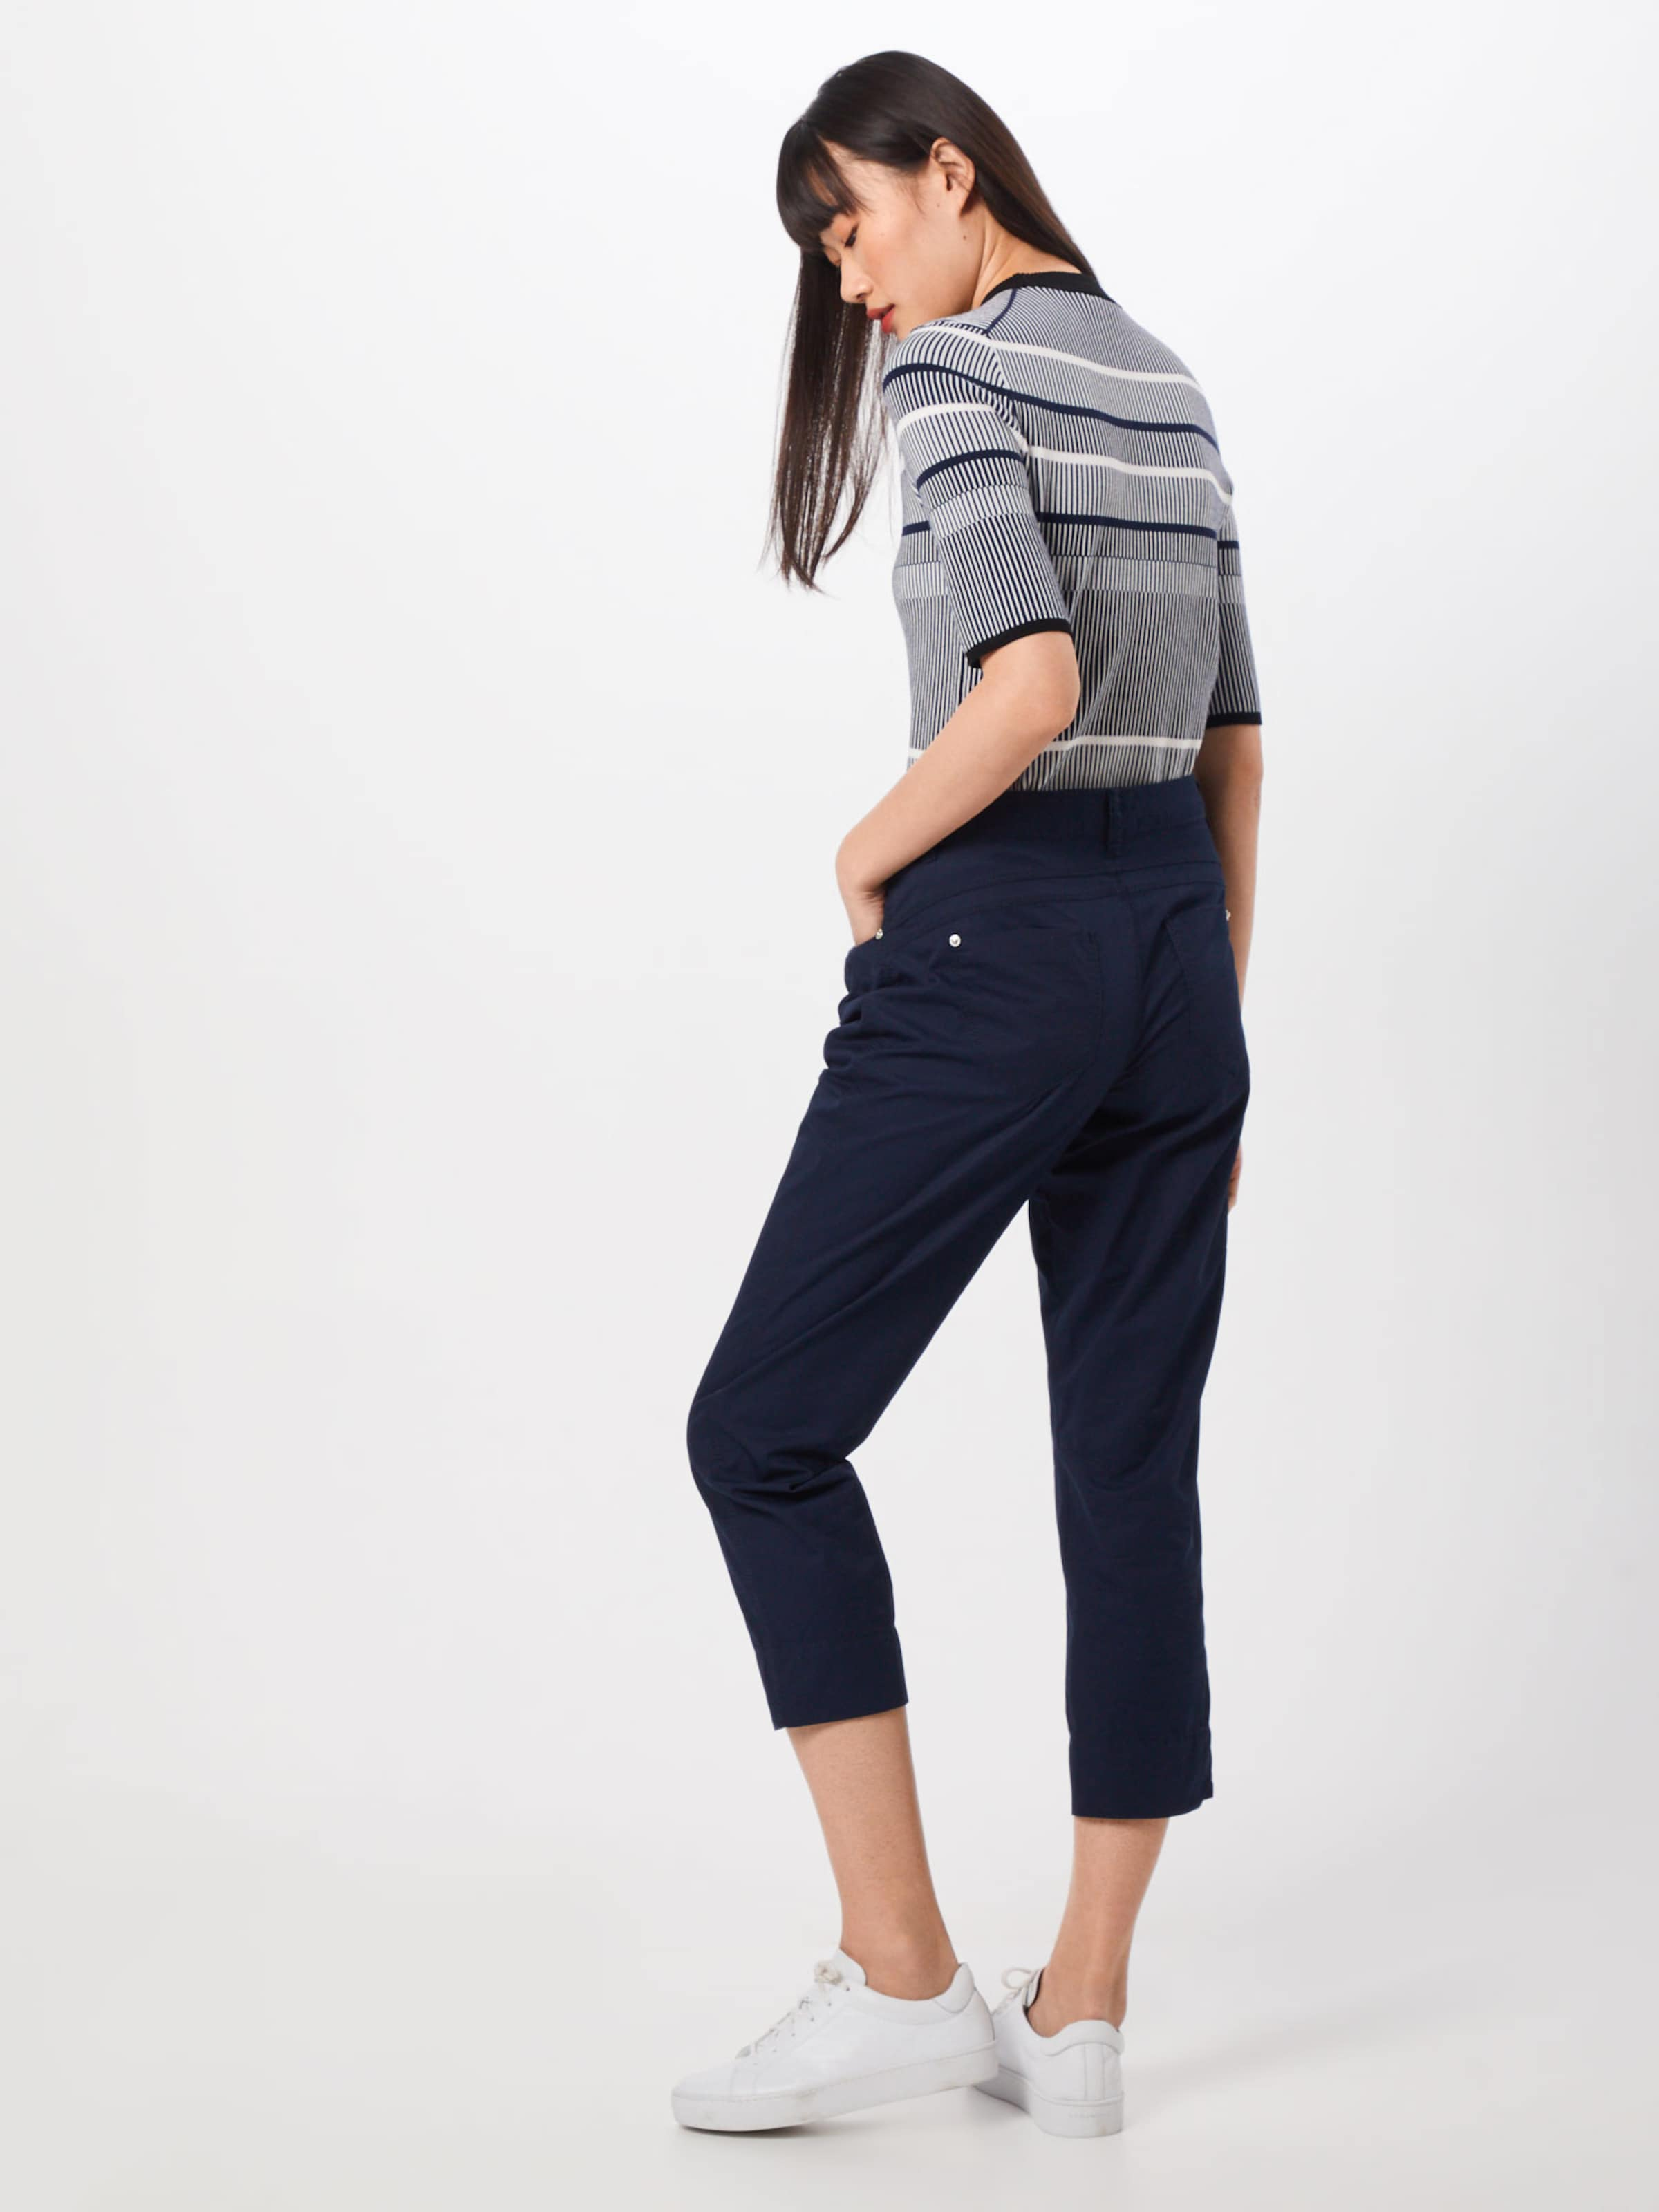 Dunkelblau Street Mw Casual' Hose In 'jane Papertouch L26 One L4Aj53R